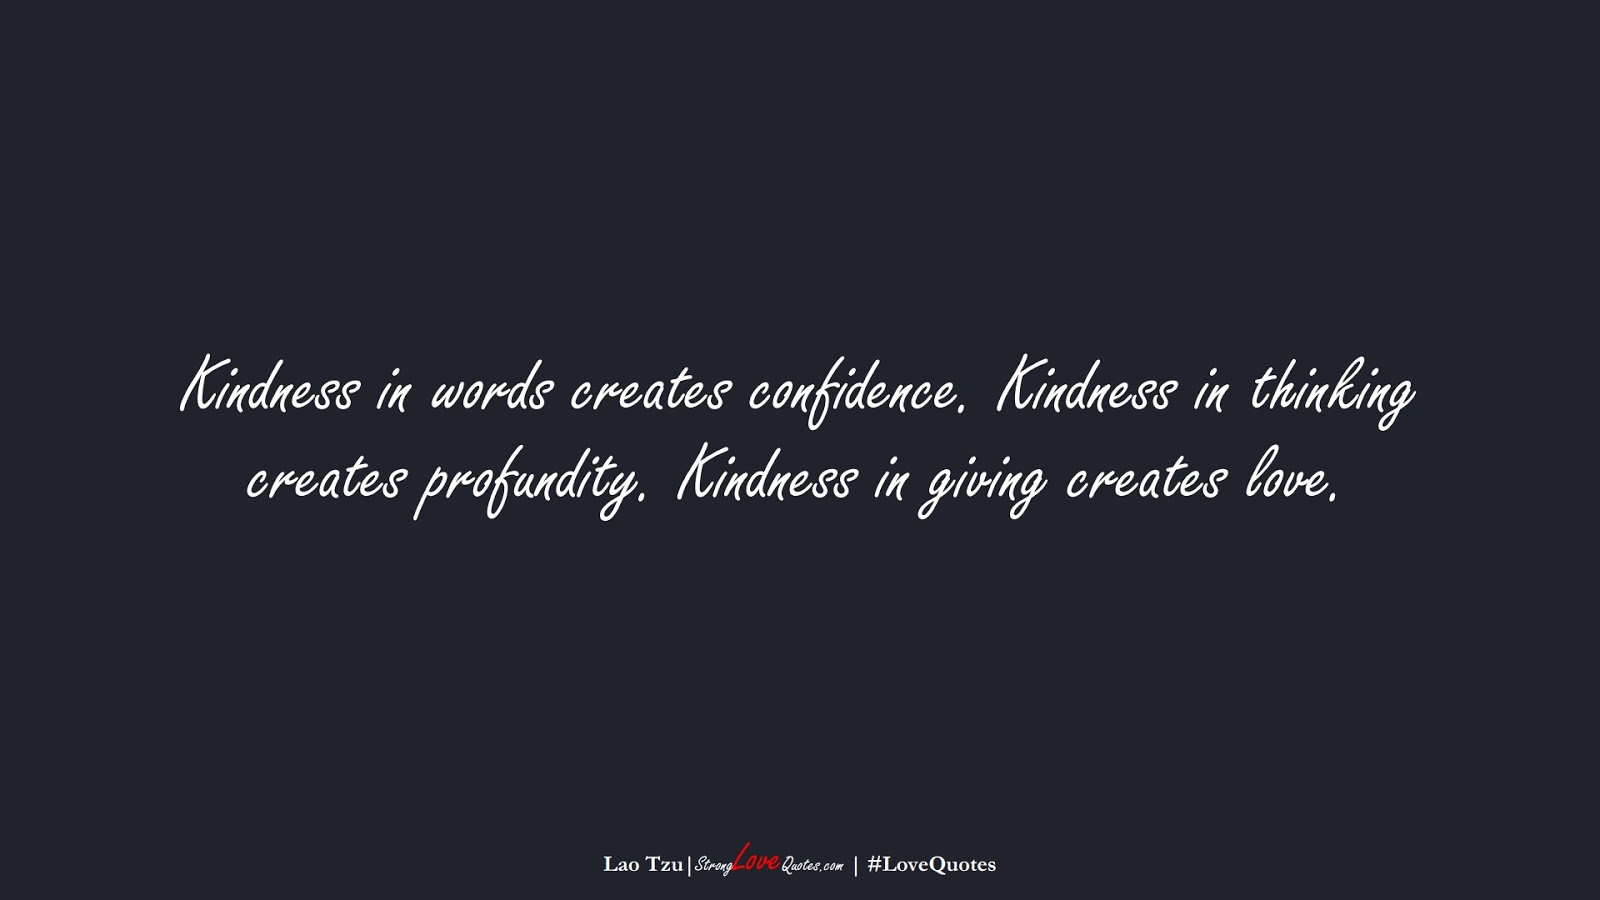 Kindness in words creates confidence. Kindness in thinking creates profundity. Kindness in giving creates love. (Lao Tzu);  #LoveQuotes